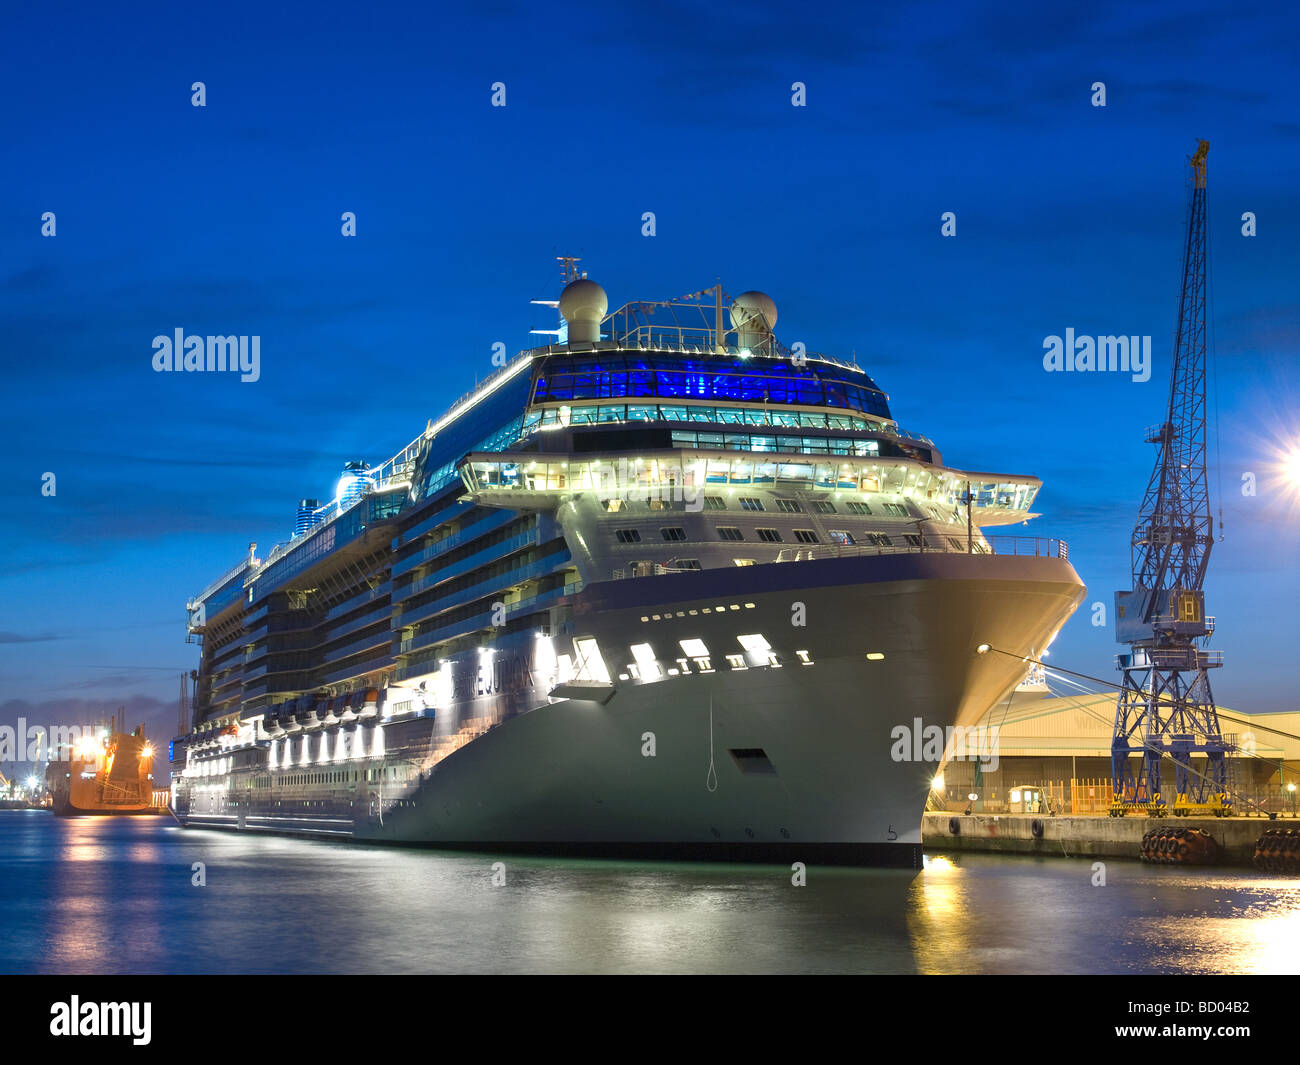 Cruise ship Celebrity Equinox berthed in Southampton UK during her inaugural celebrations prior to her naming ceremony - Stock Image